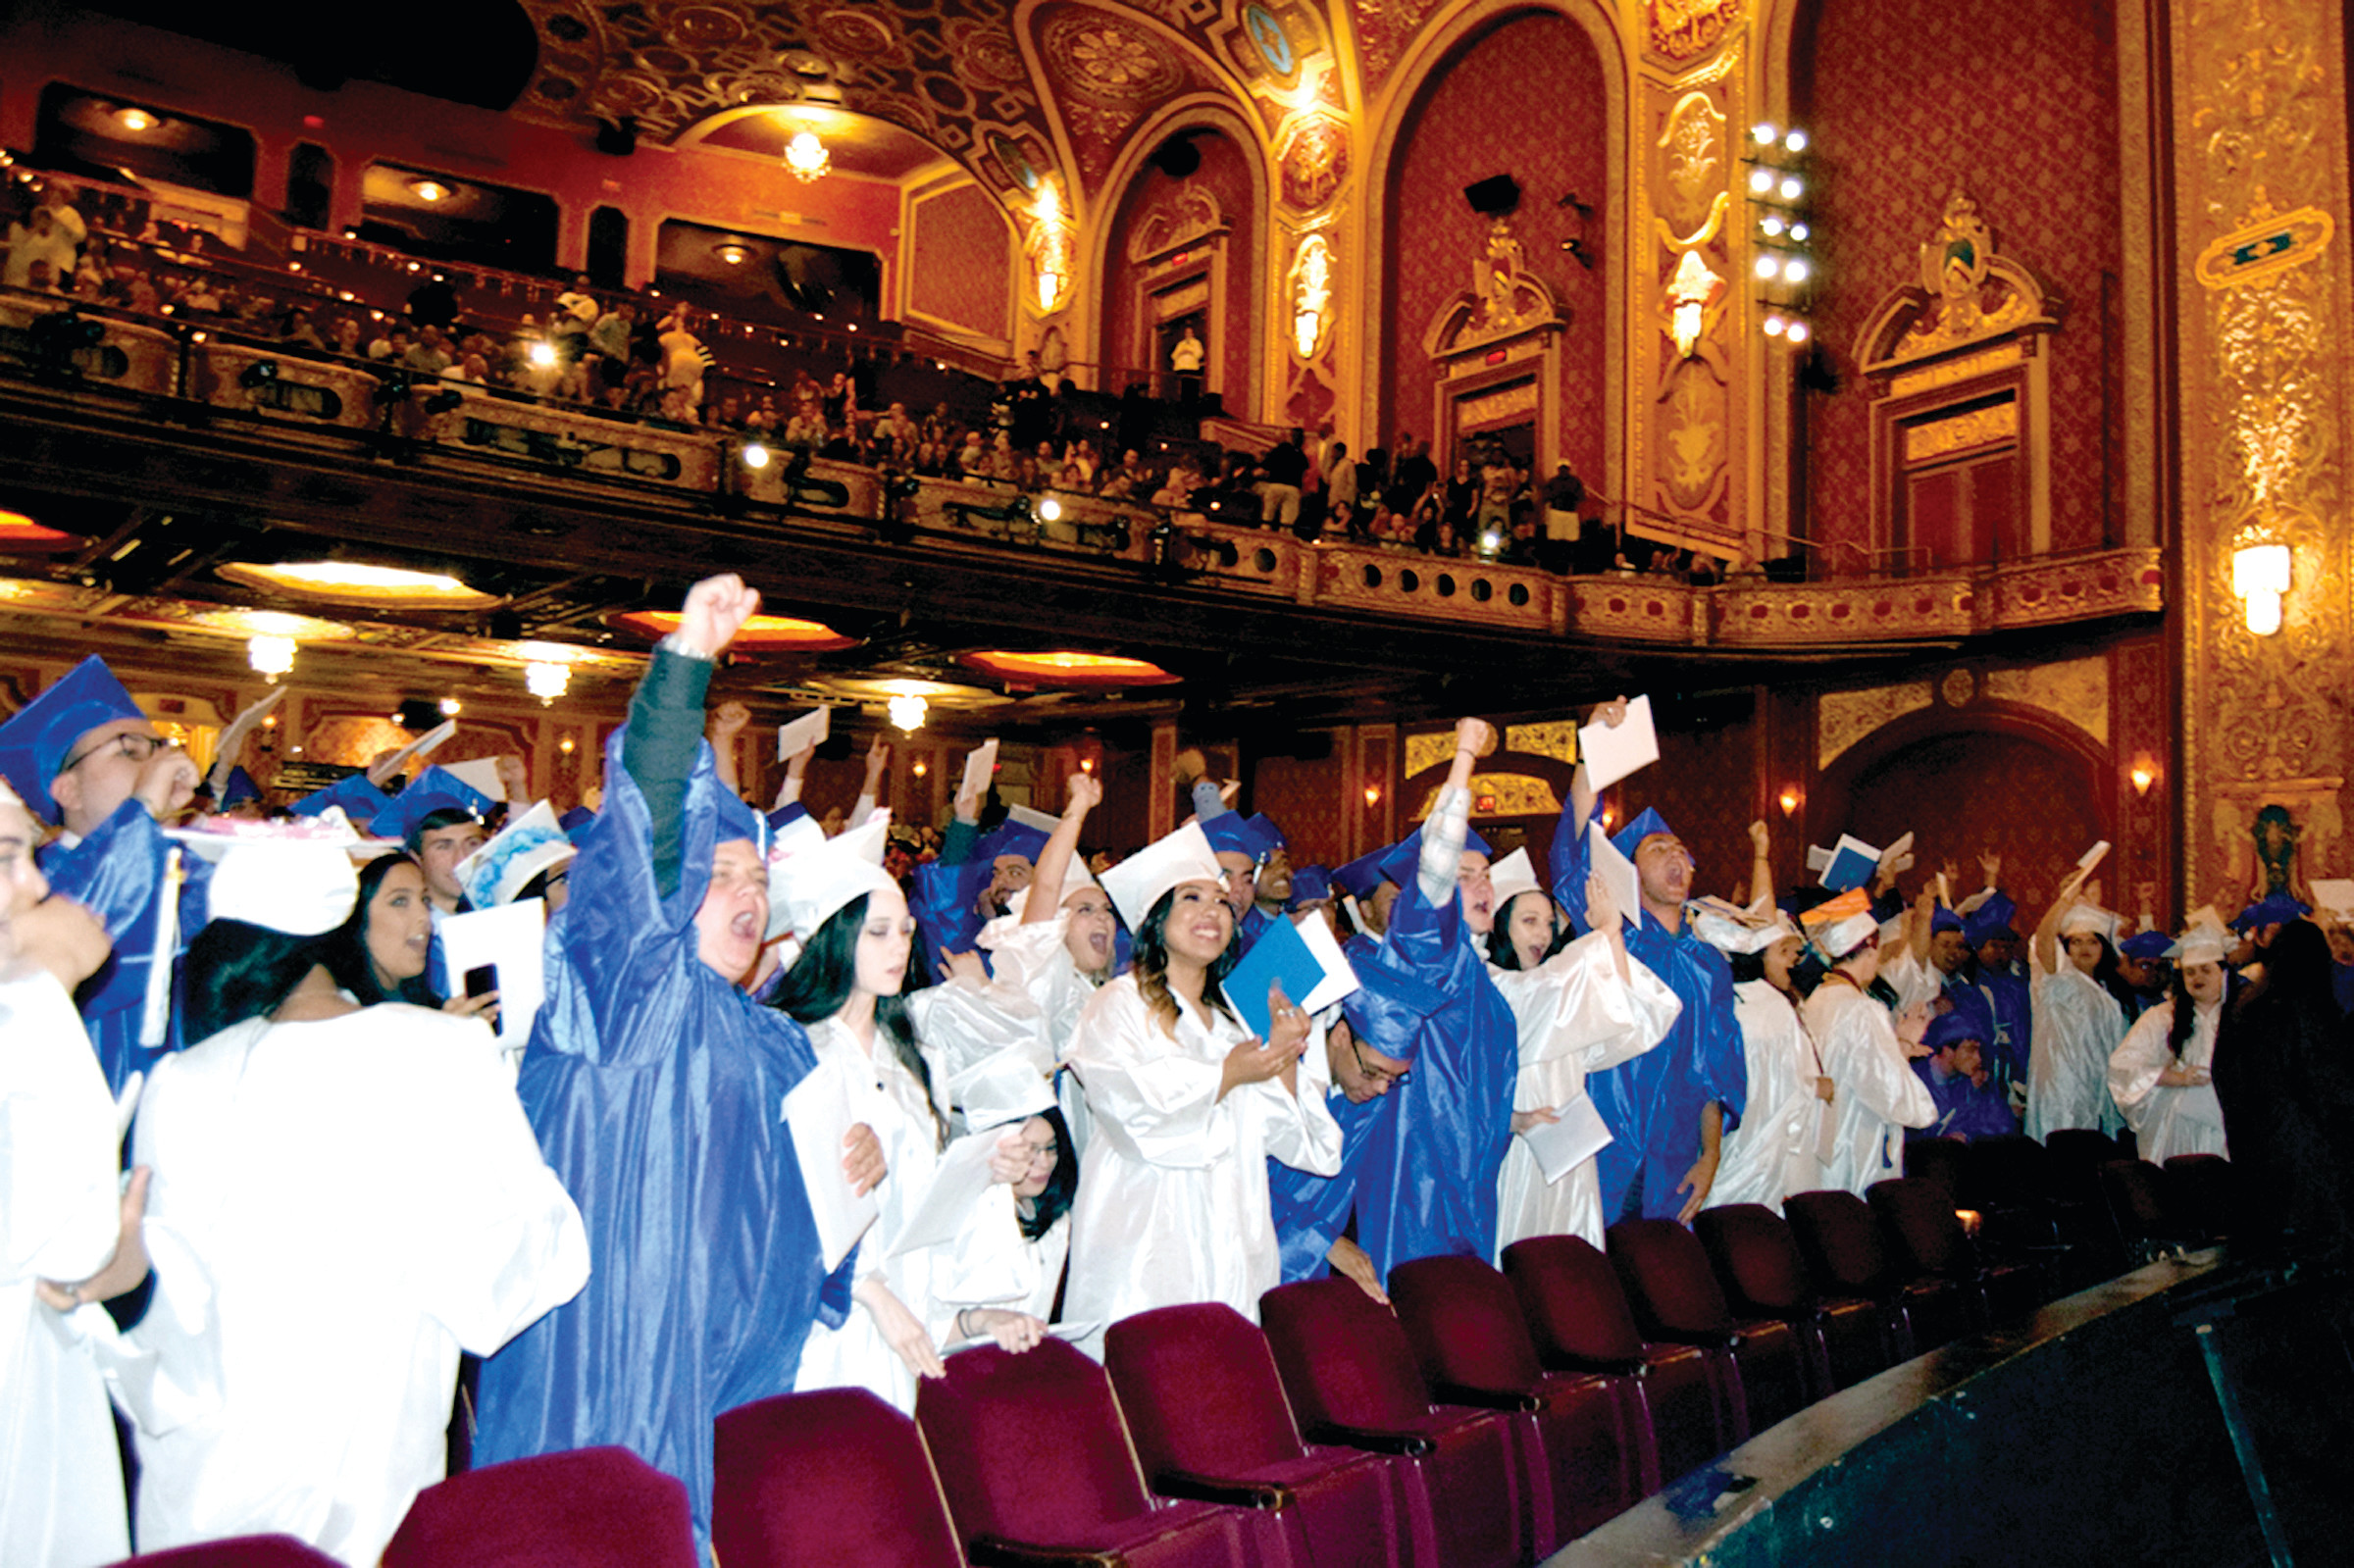 PANTHERS ROAR: Johnston seniors celebrate after receiving their diplomas at graduation on Friday at the Providence Performing Arts Center.